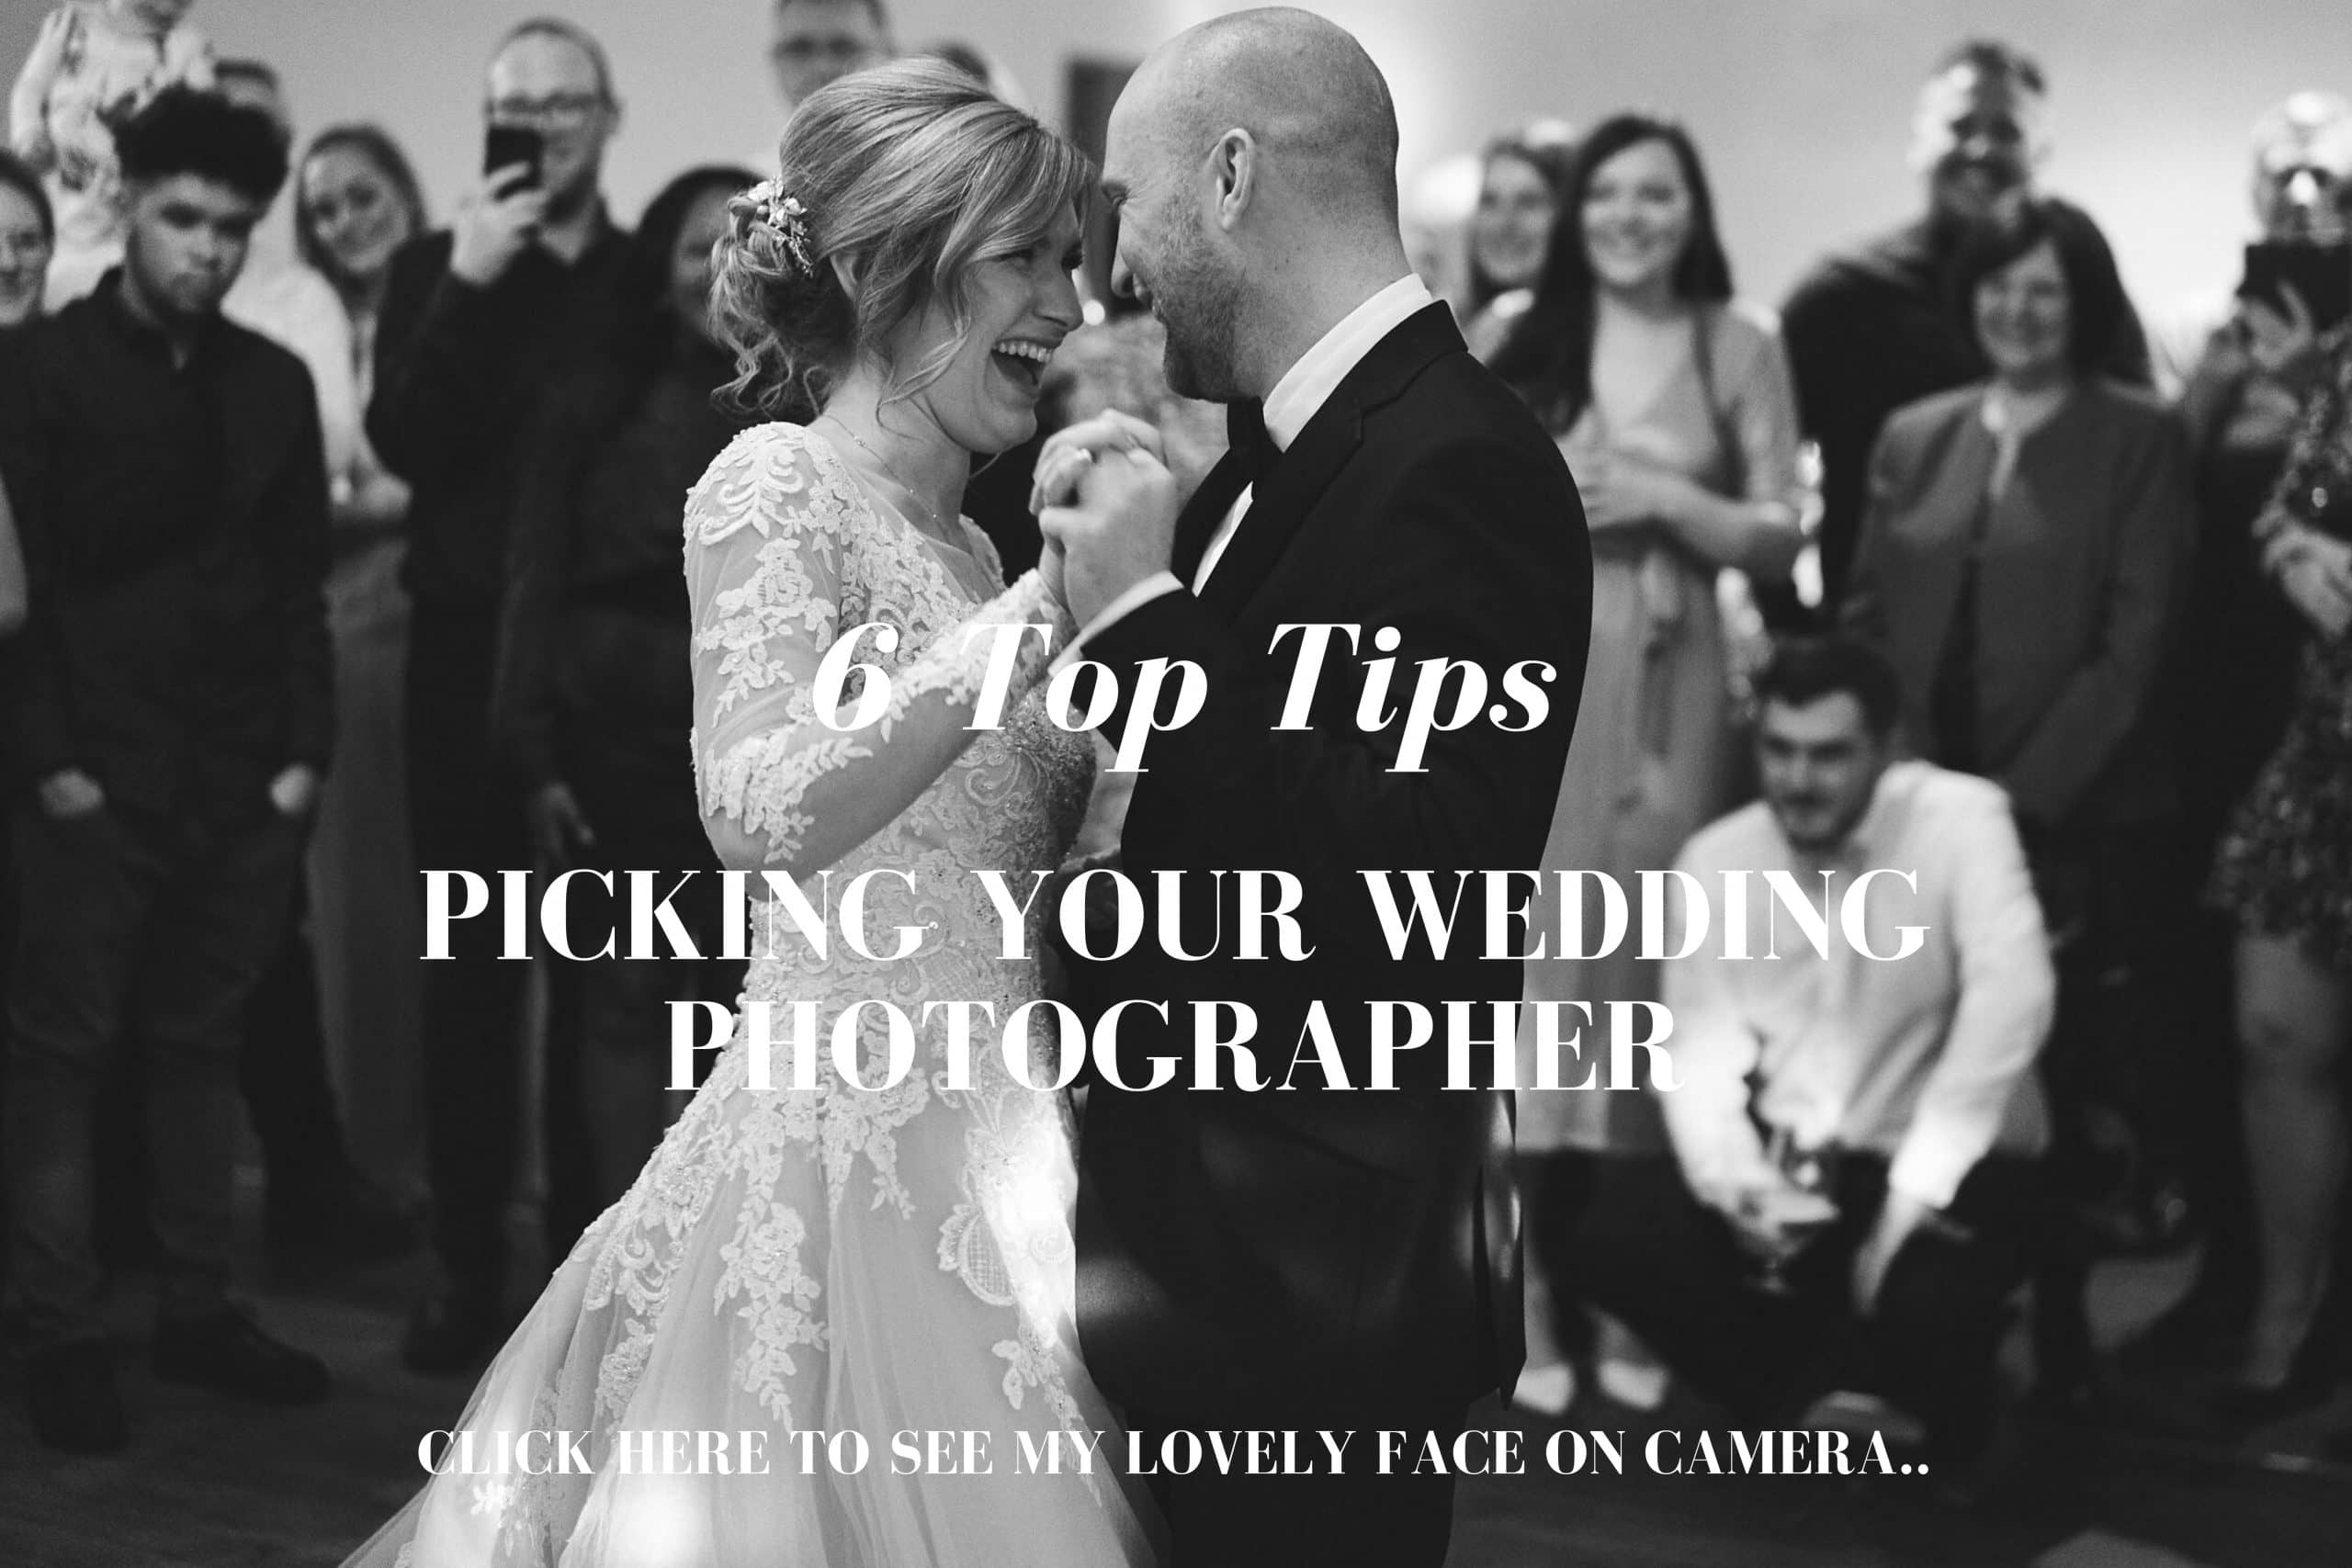 Top Tips for Picking your wedding photographer by Andy Saywell - Wedding photographer based in the UK